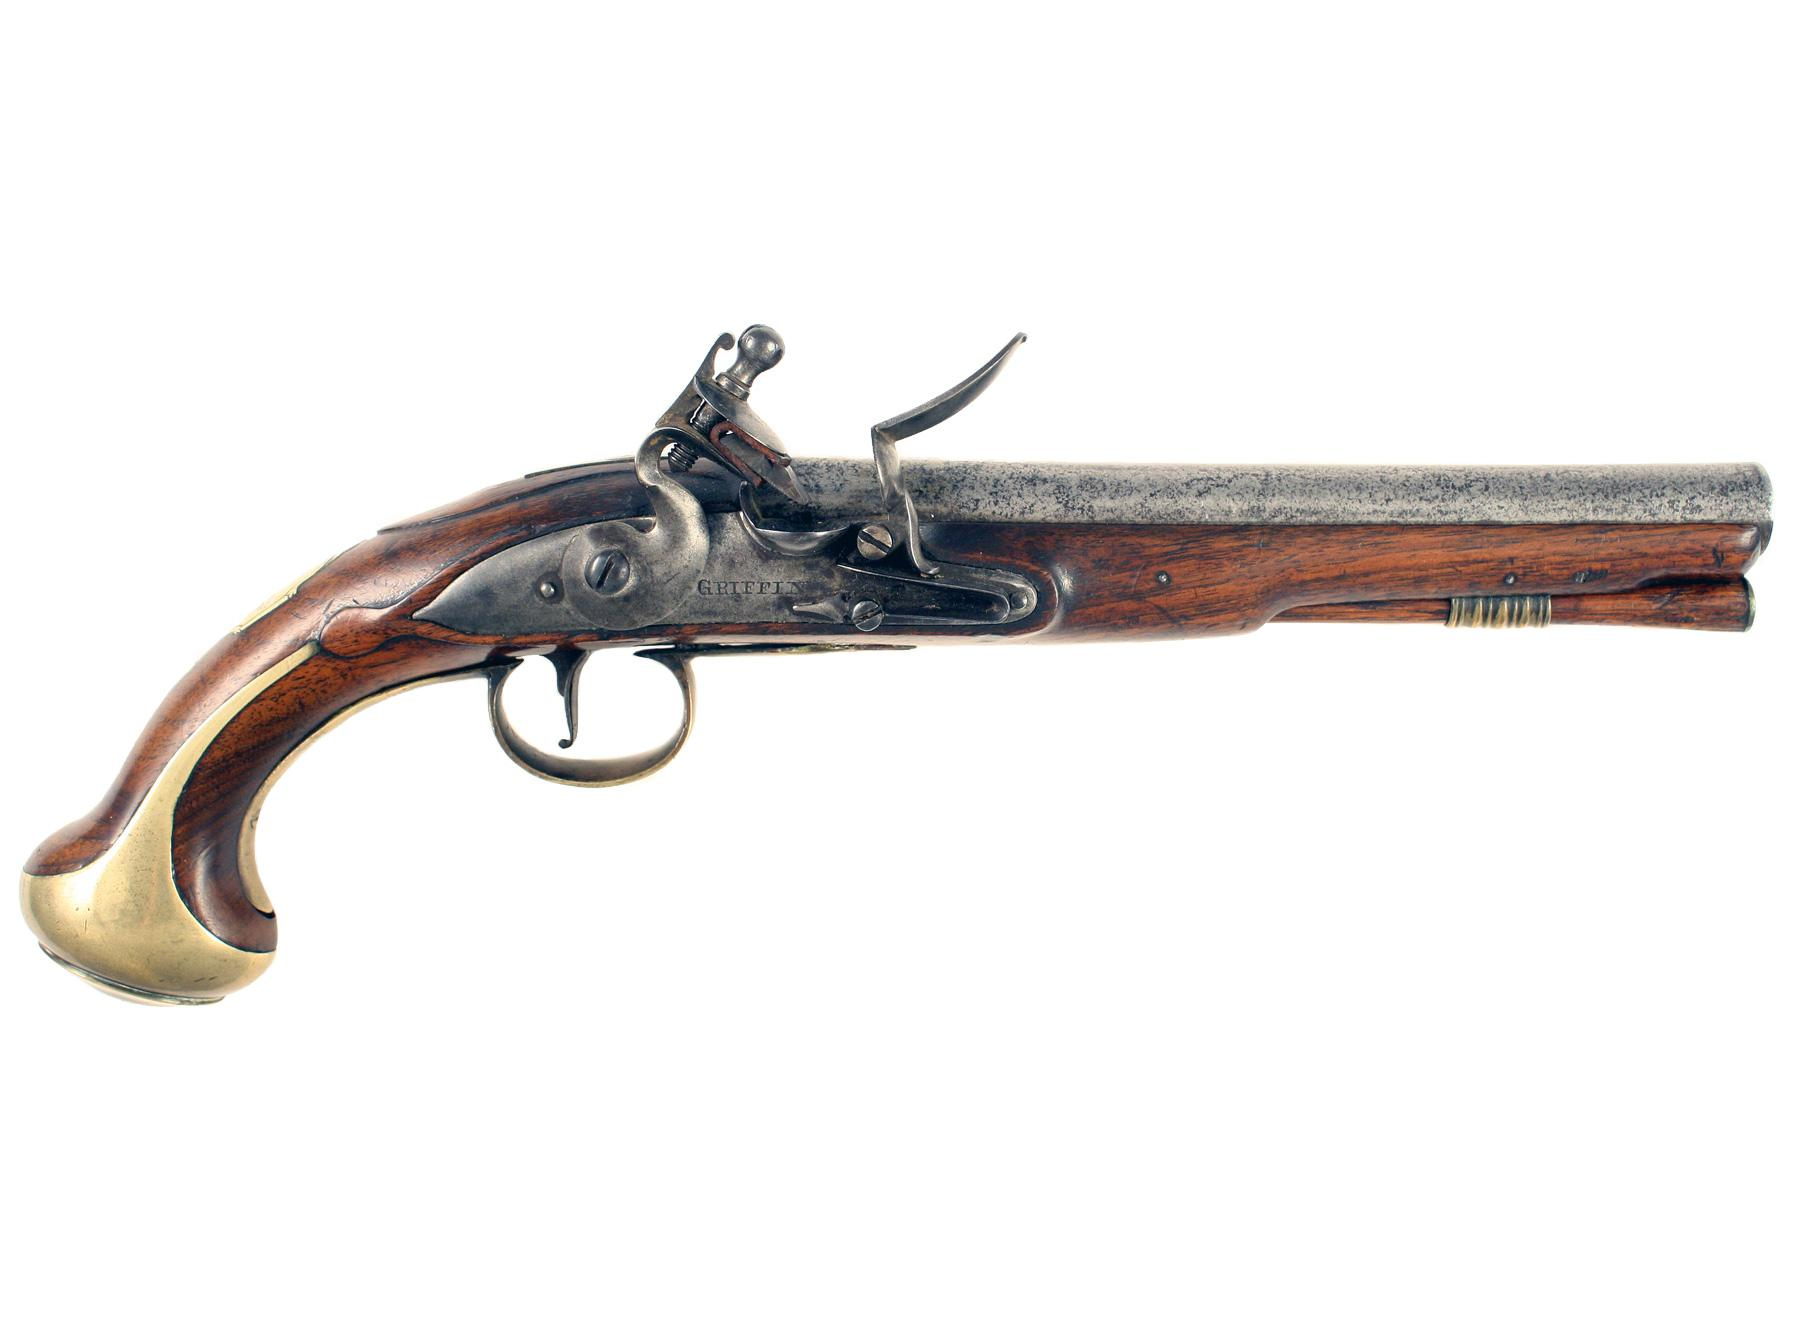 A Griffin Livery Pistol